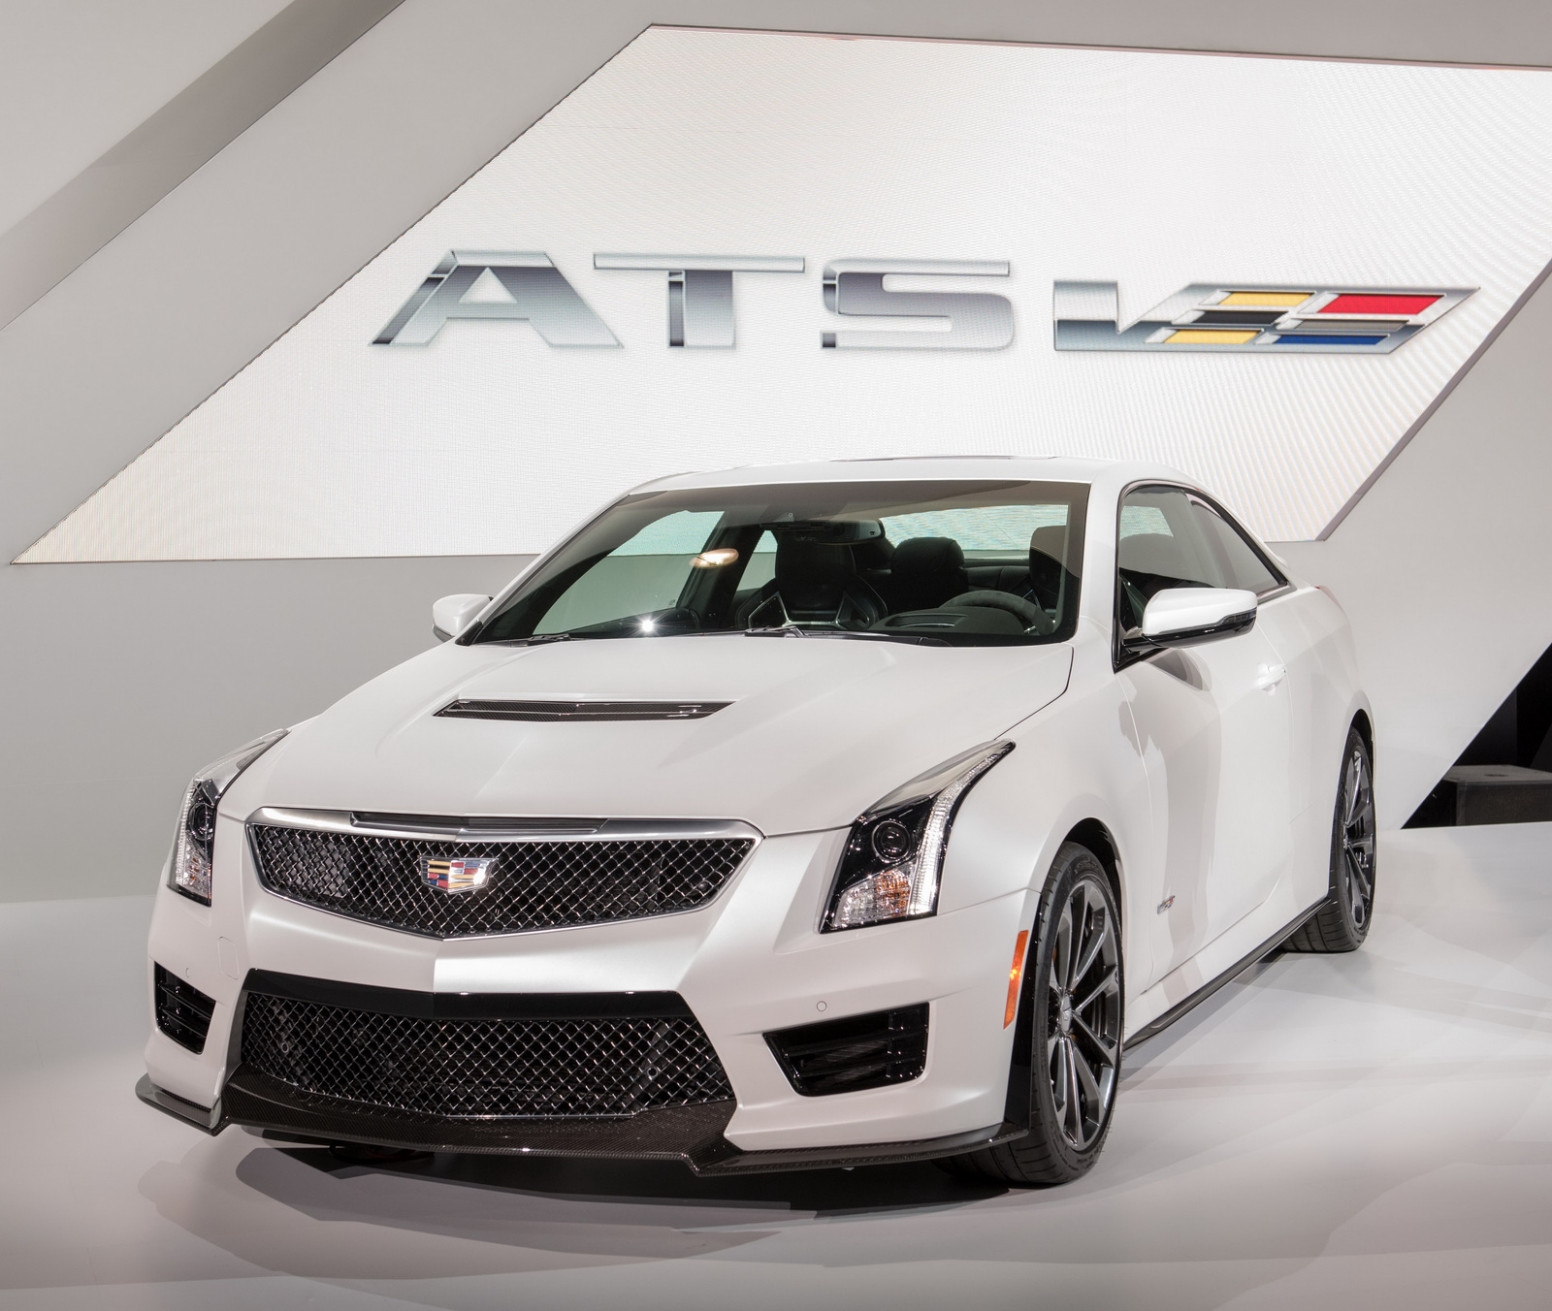 Redesign and Concept 2022 Cadillac Ats V Coupe